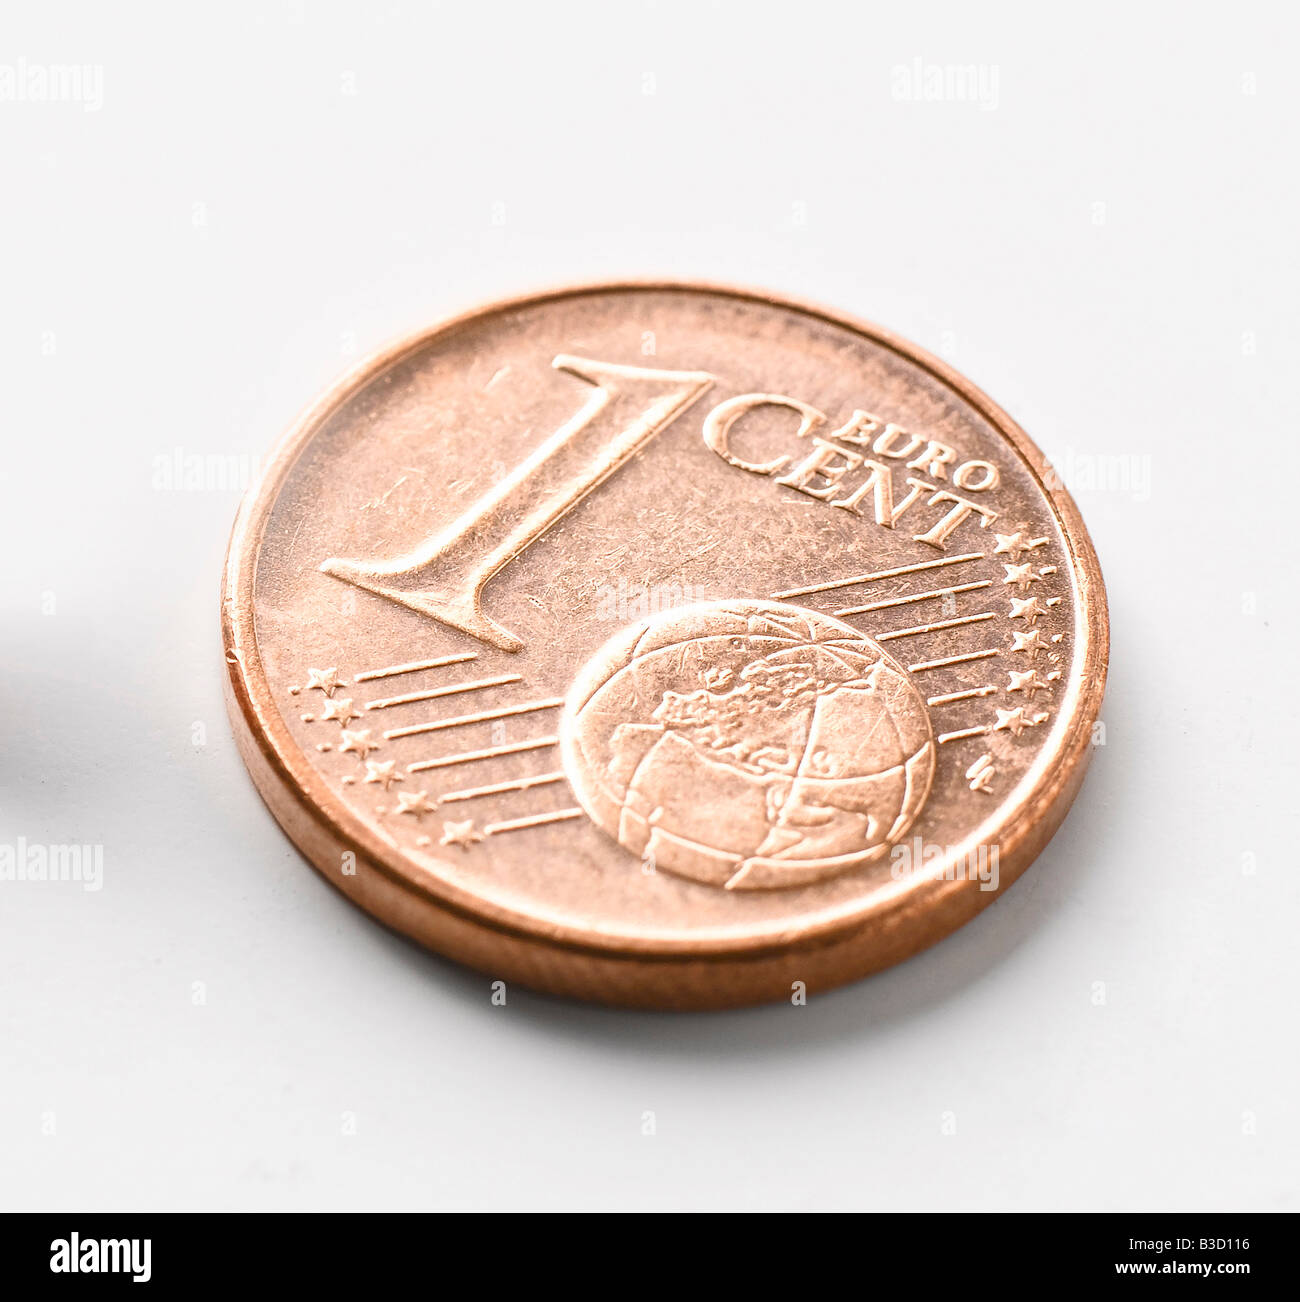 1 Euro Cent, close-up - Stock Image